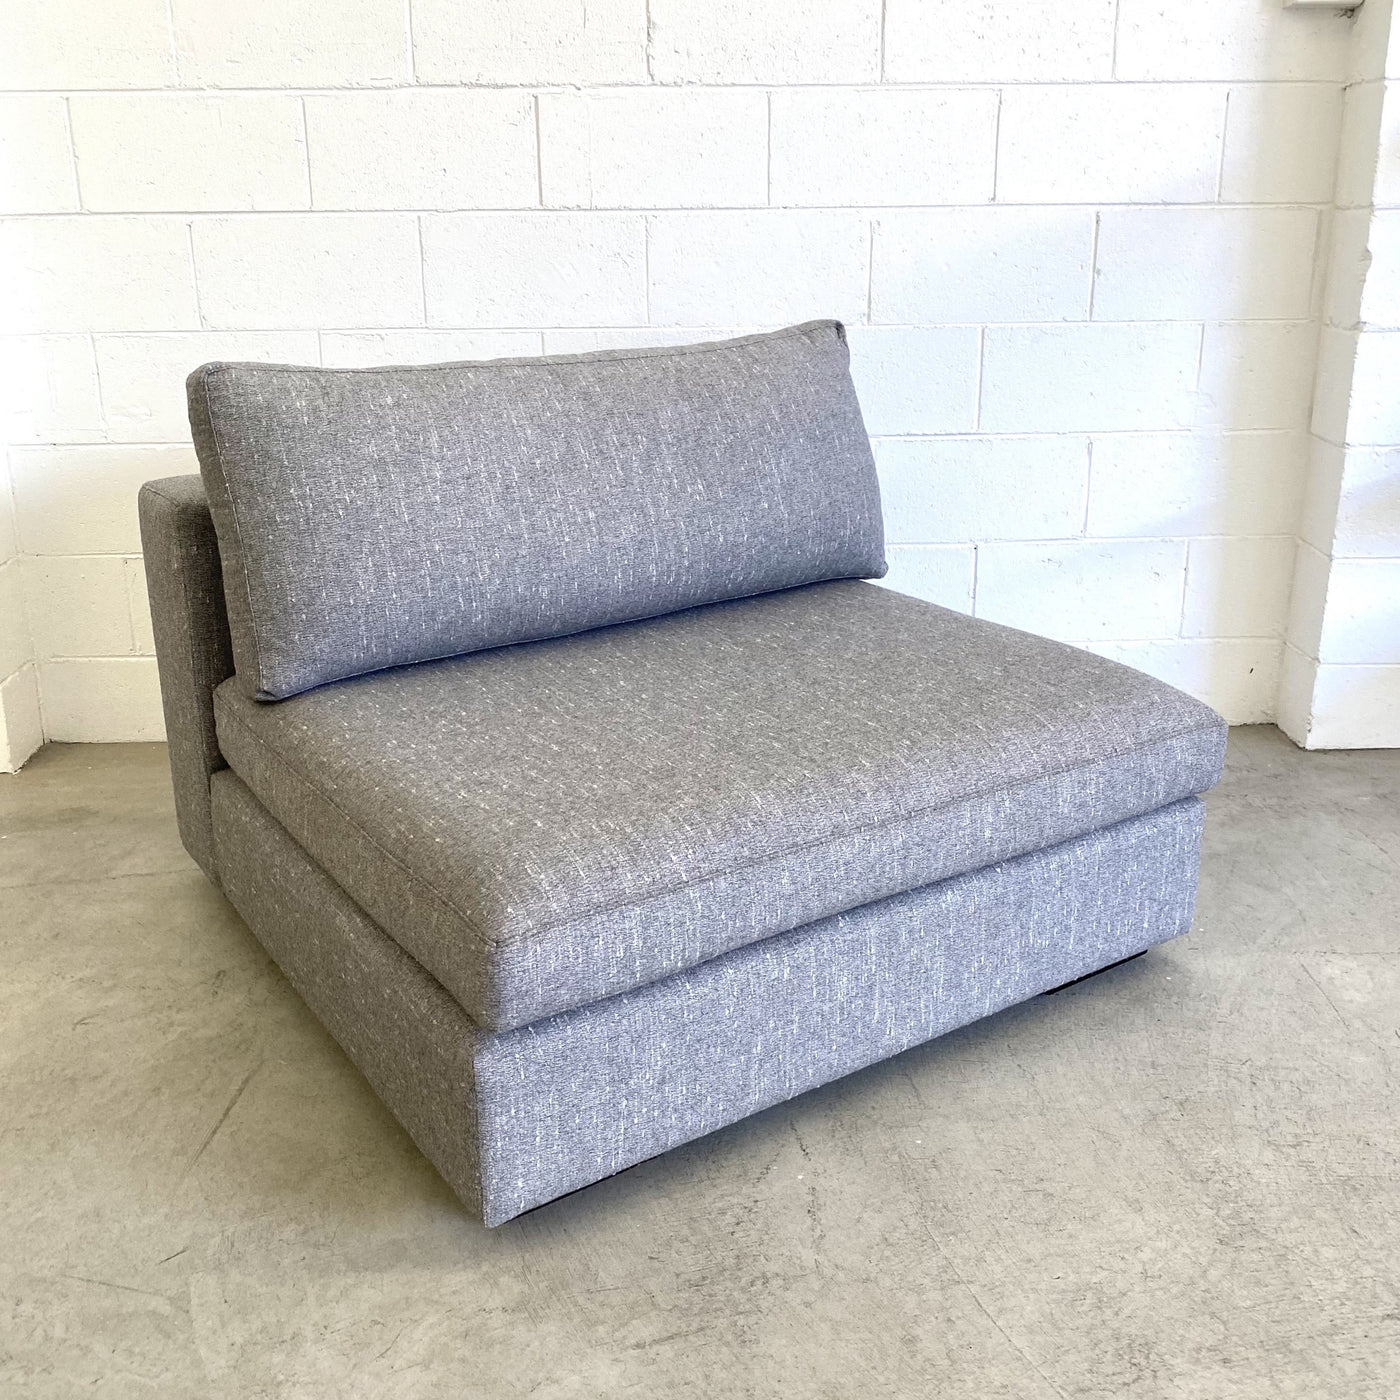 Billie sofa chair in Minimalist Fabric Was $2,600 Now $980